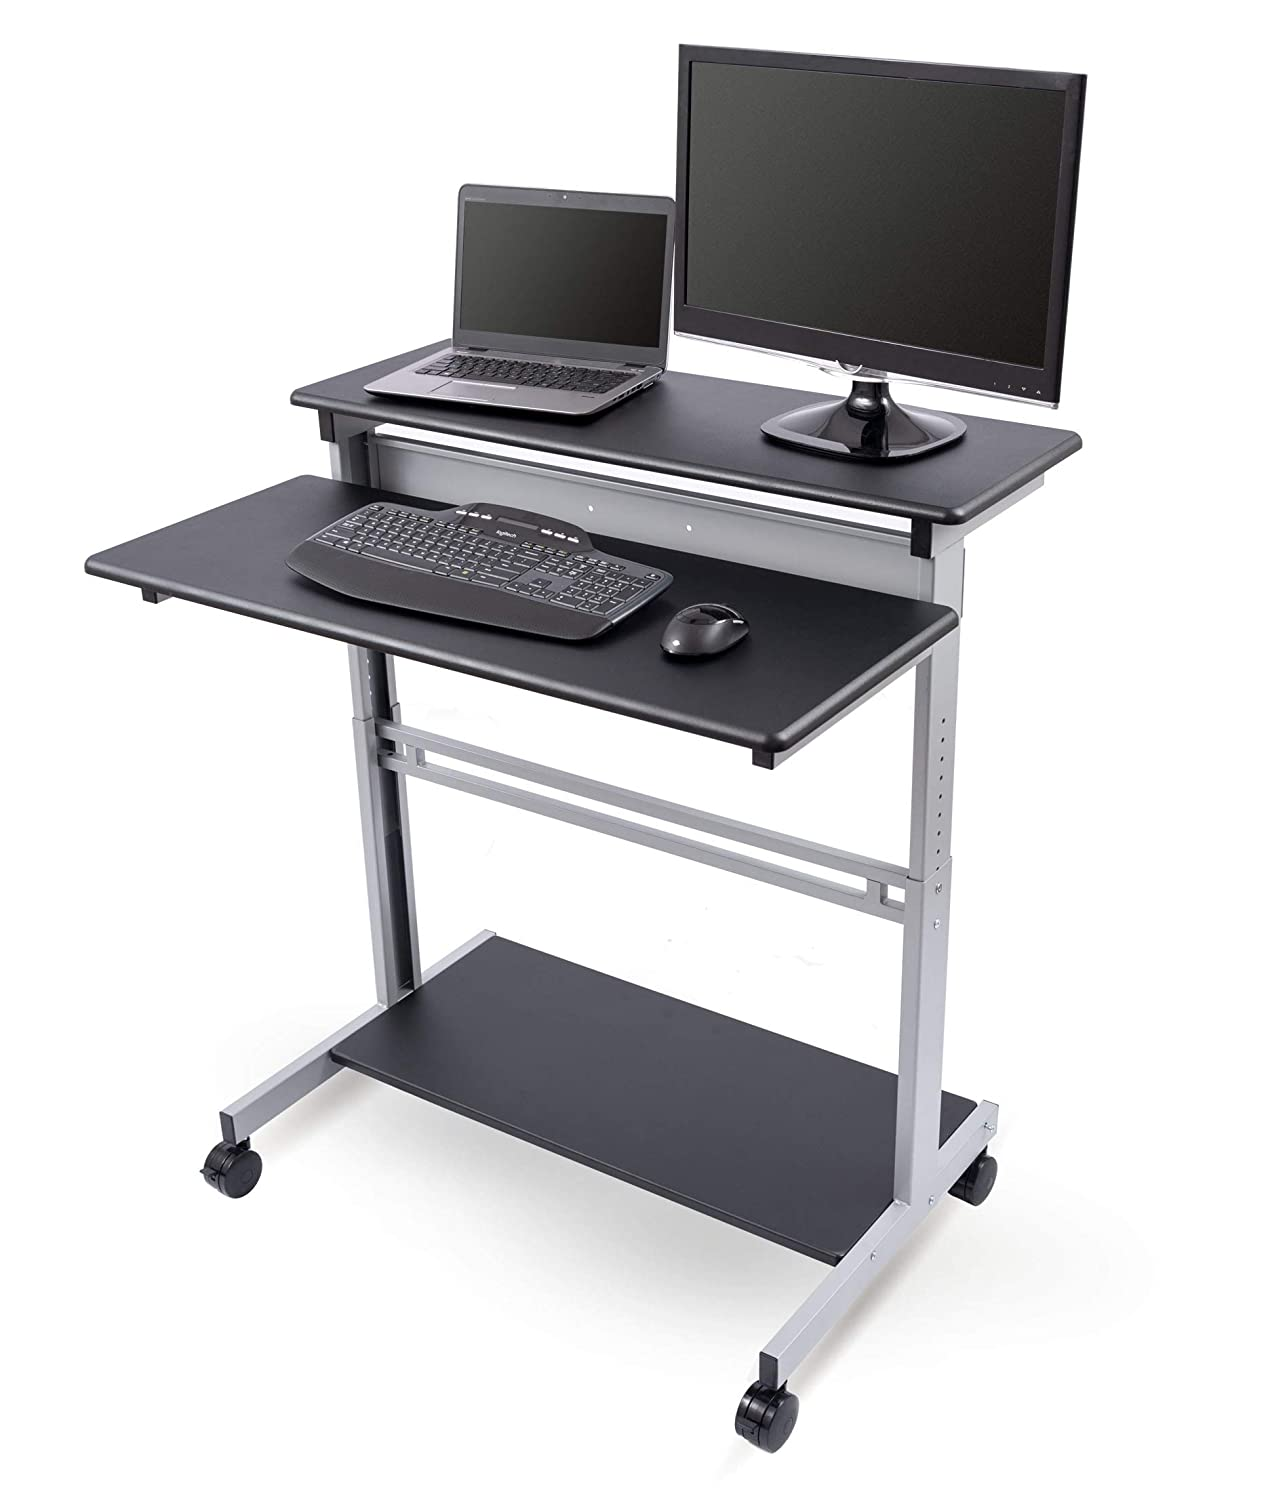 "40"" Black Shelves Mobile Ergonomic Stand Up Desk Computer Workstation"